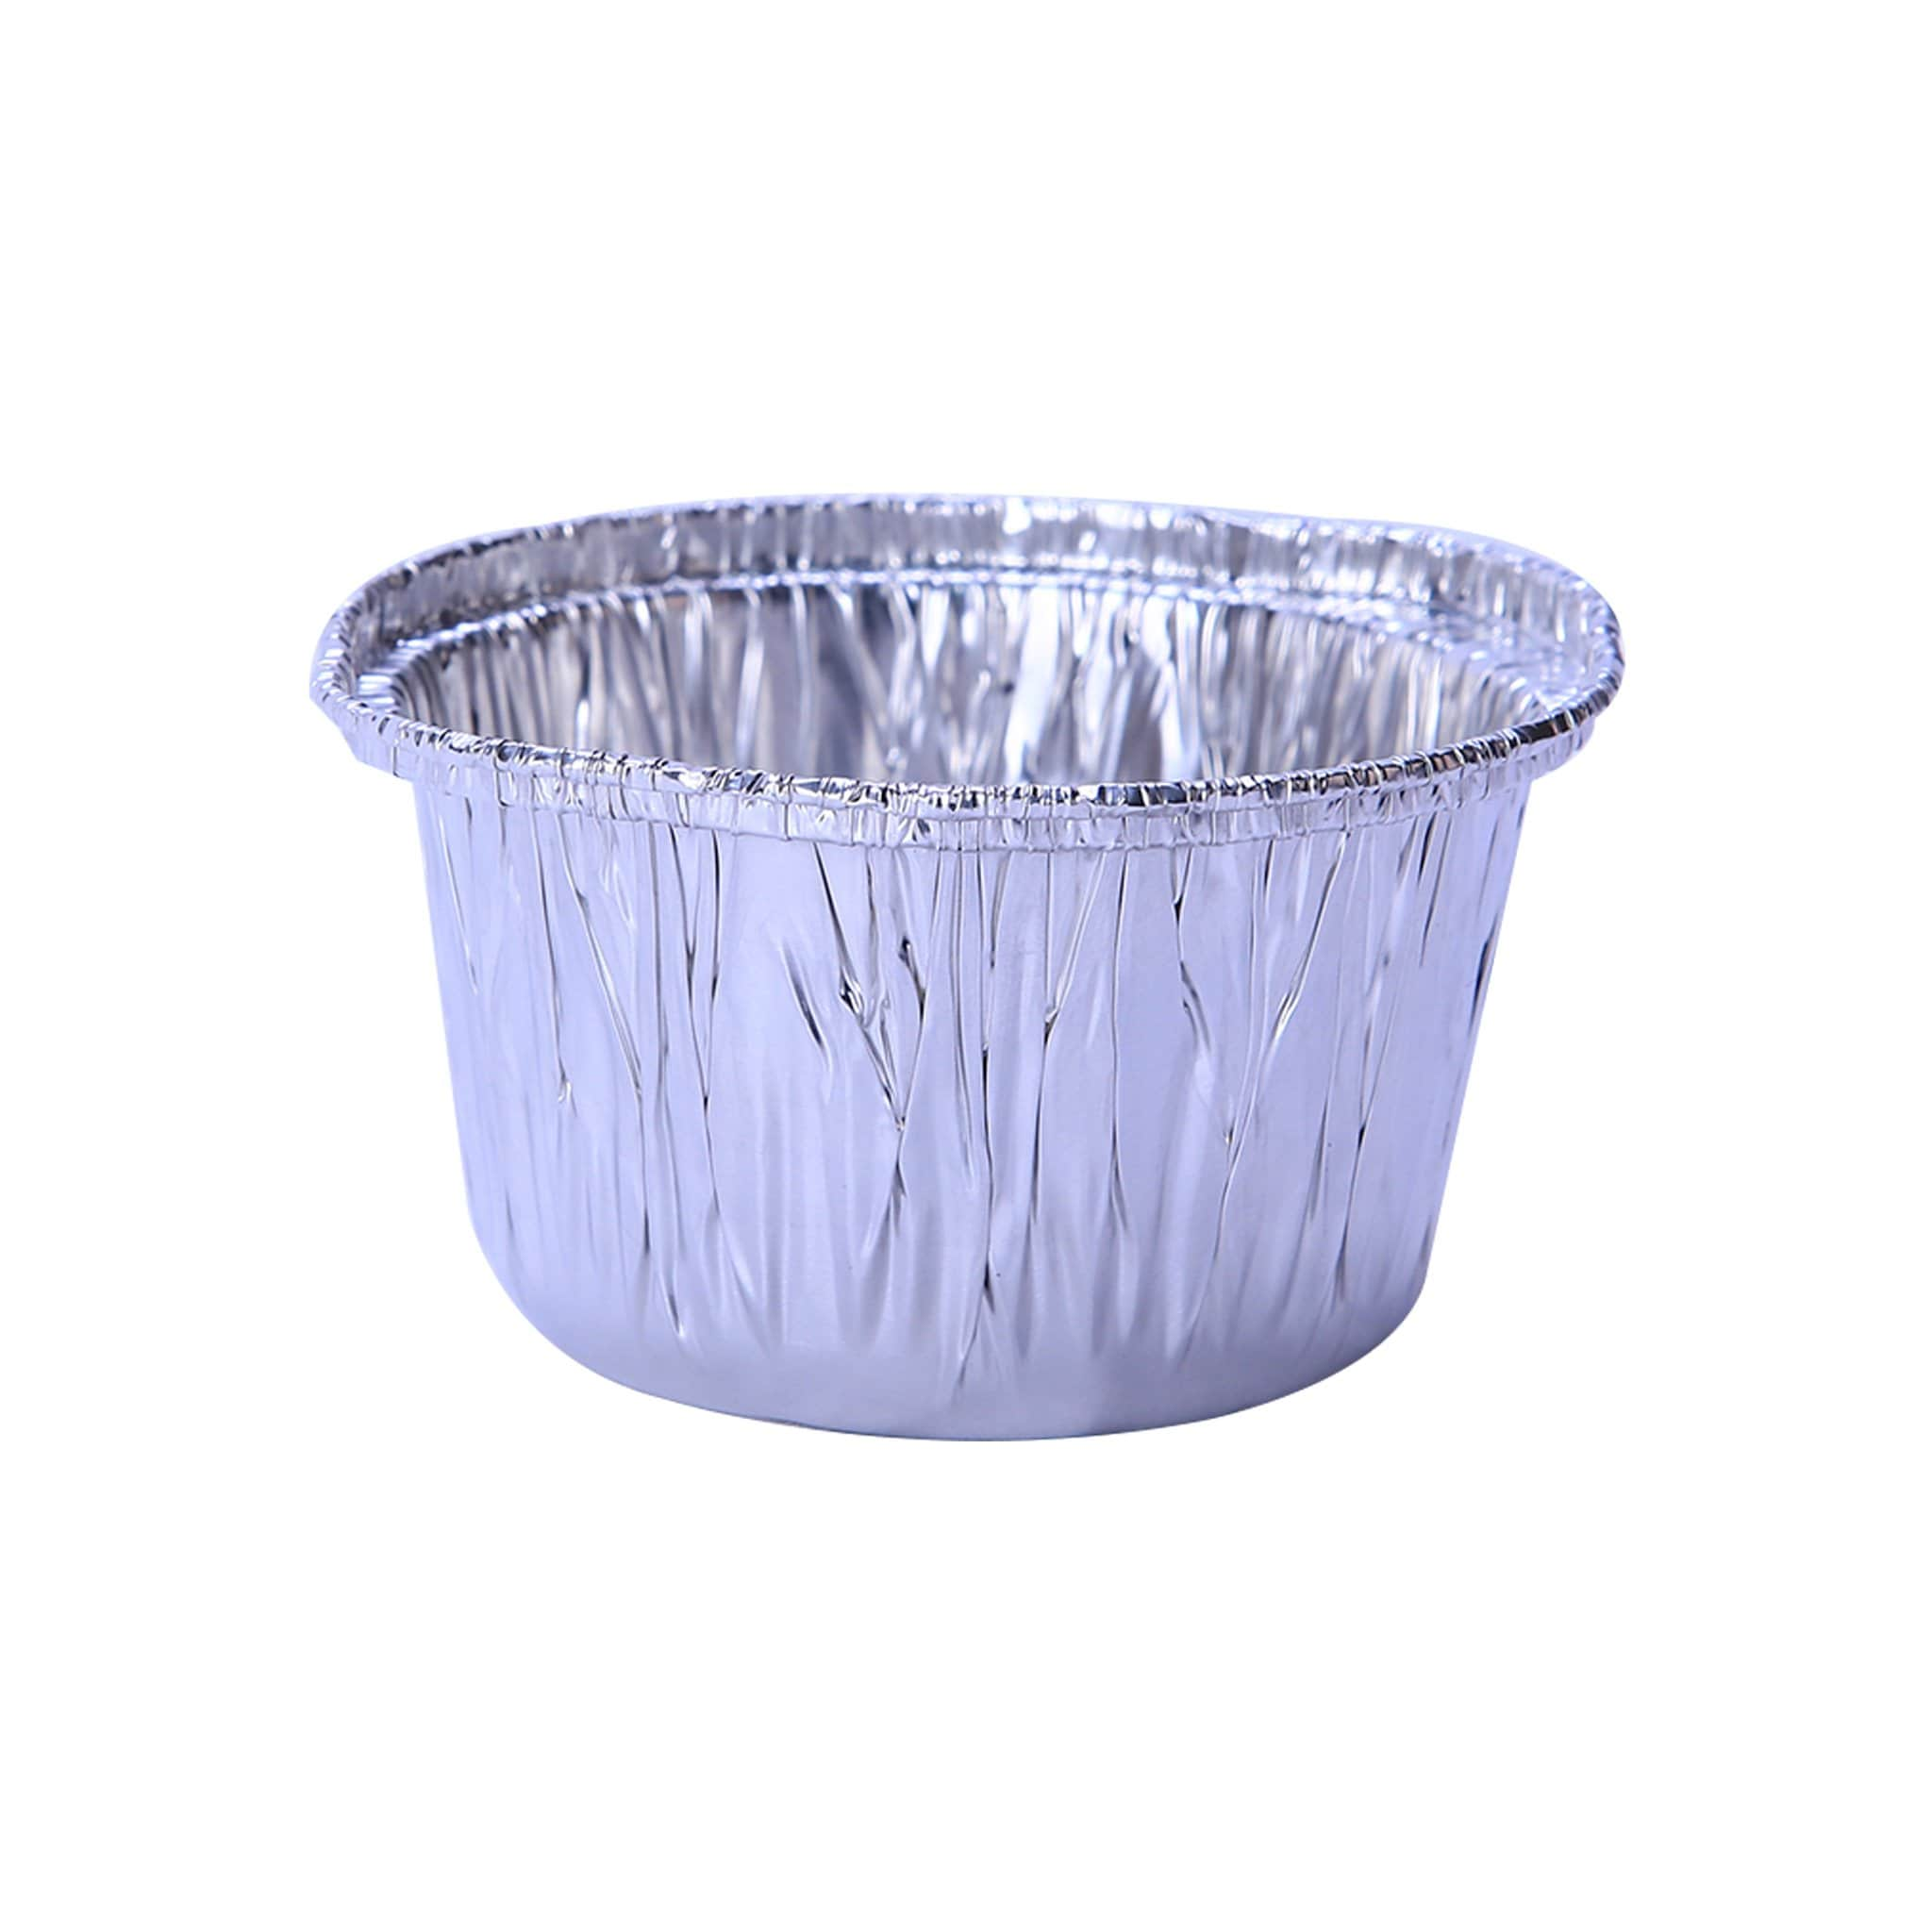 Hotpack | Aluminium POT Container With Hood 9cm | 600 Sets